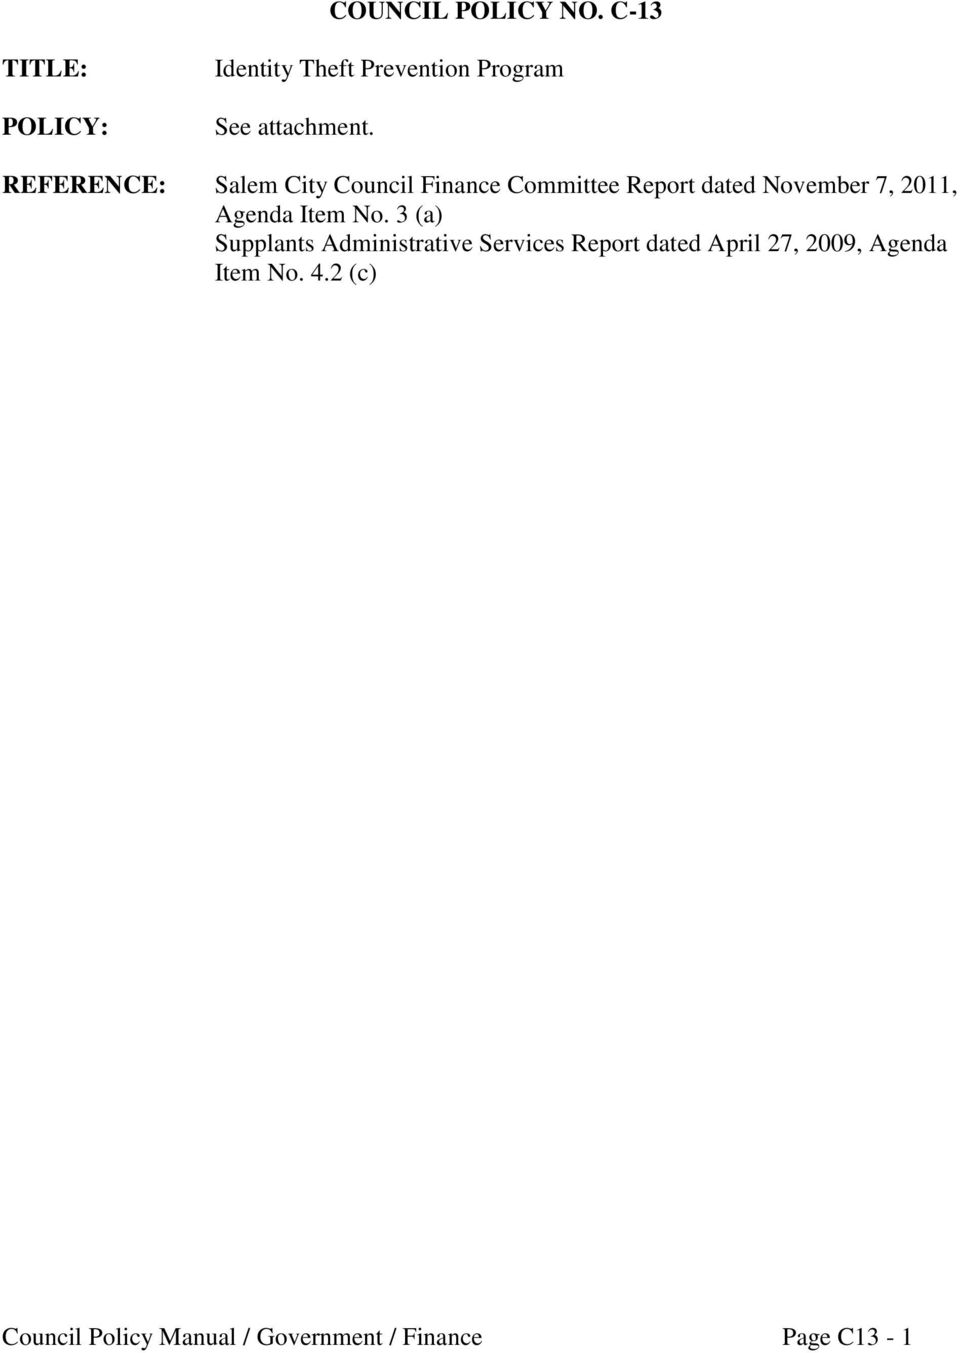 REFERENCE: Salem City Council Finance Committee Report dated November 7, 2011,